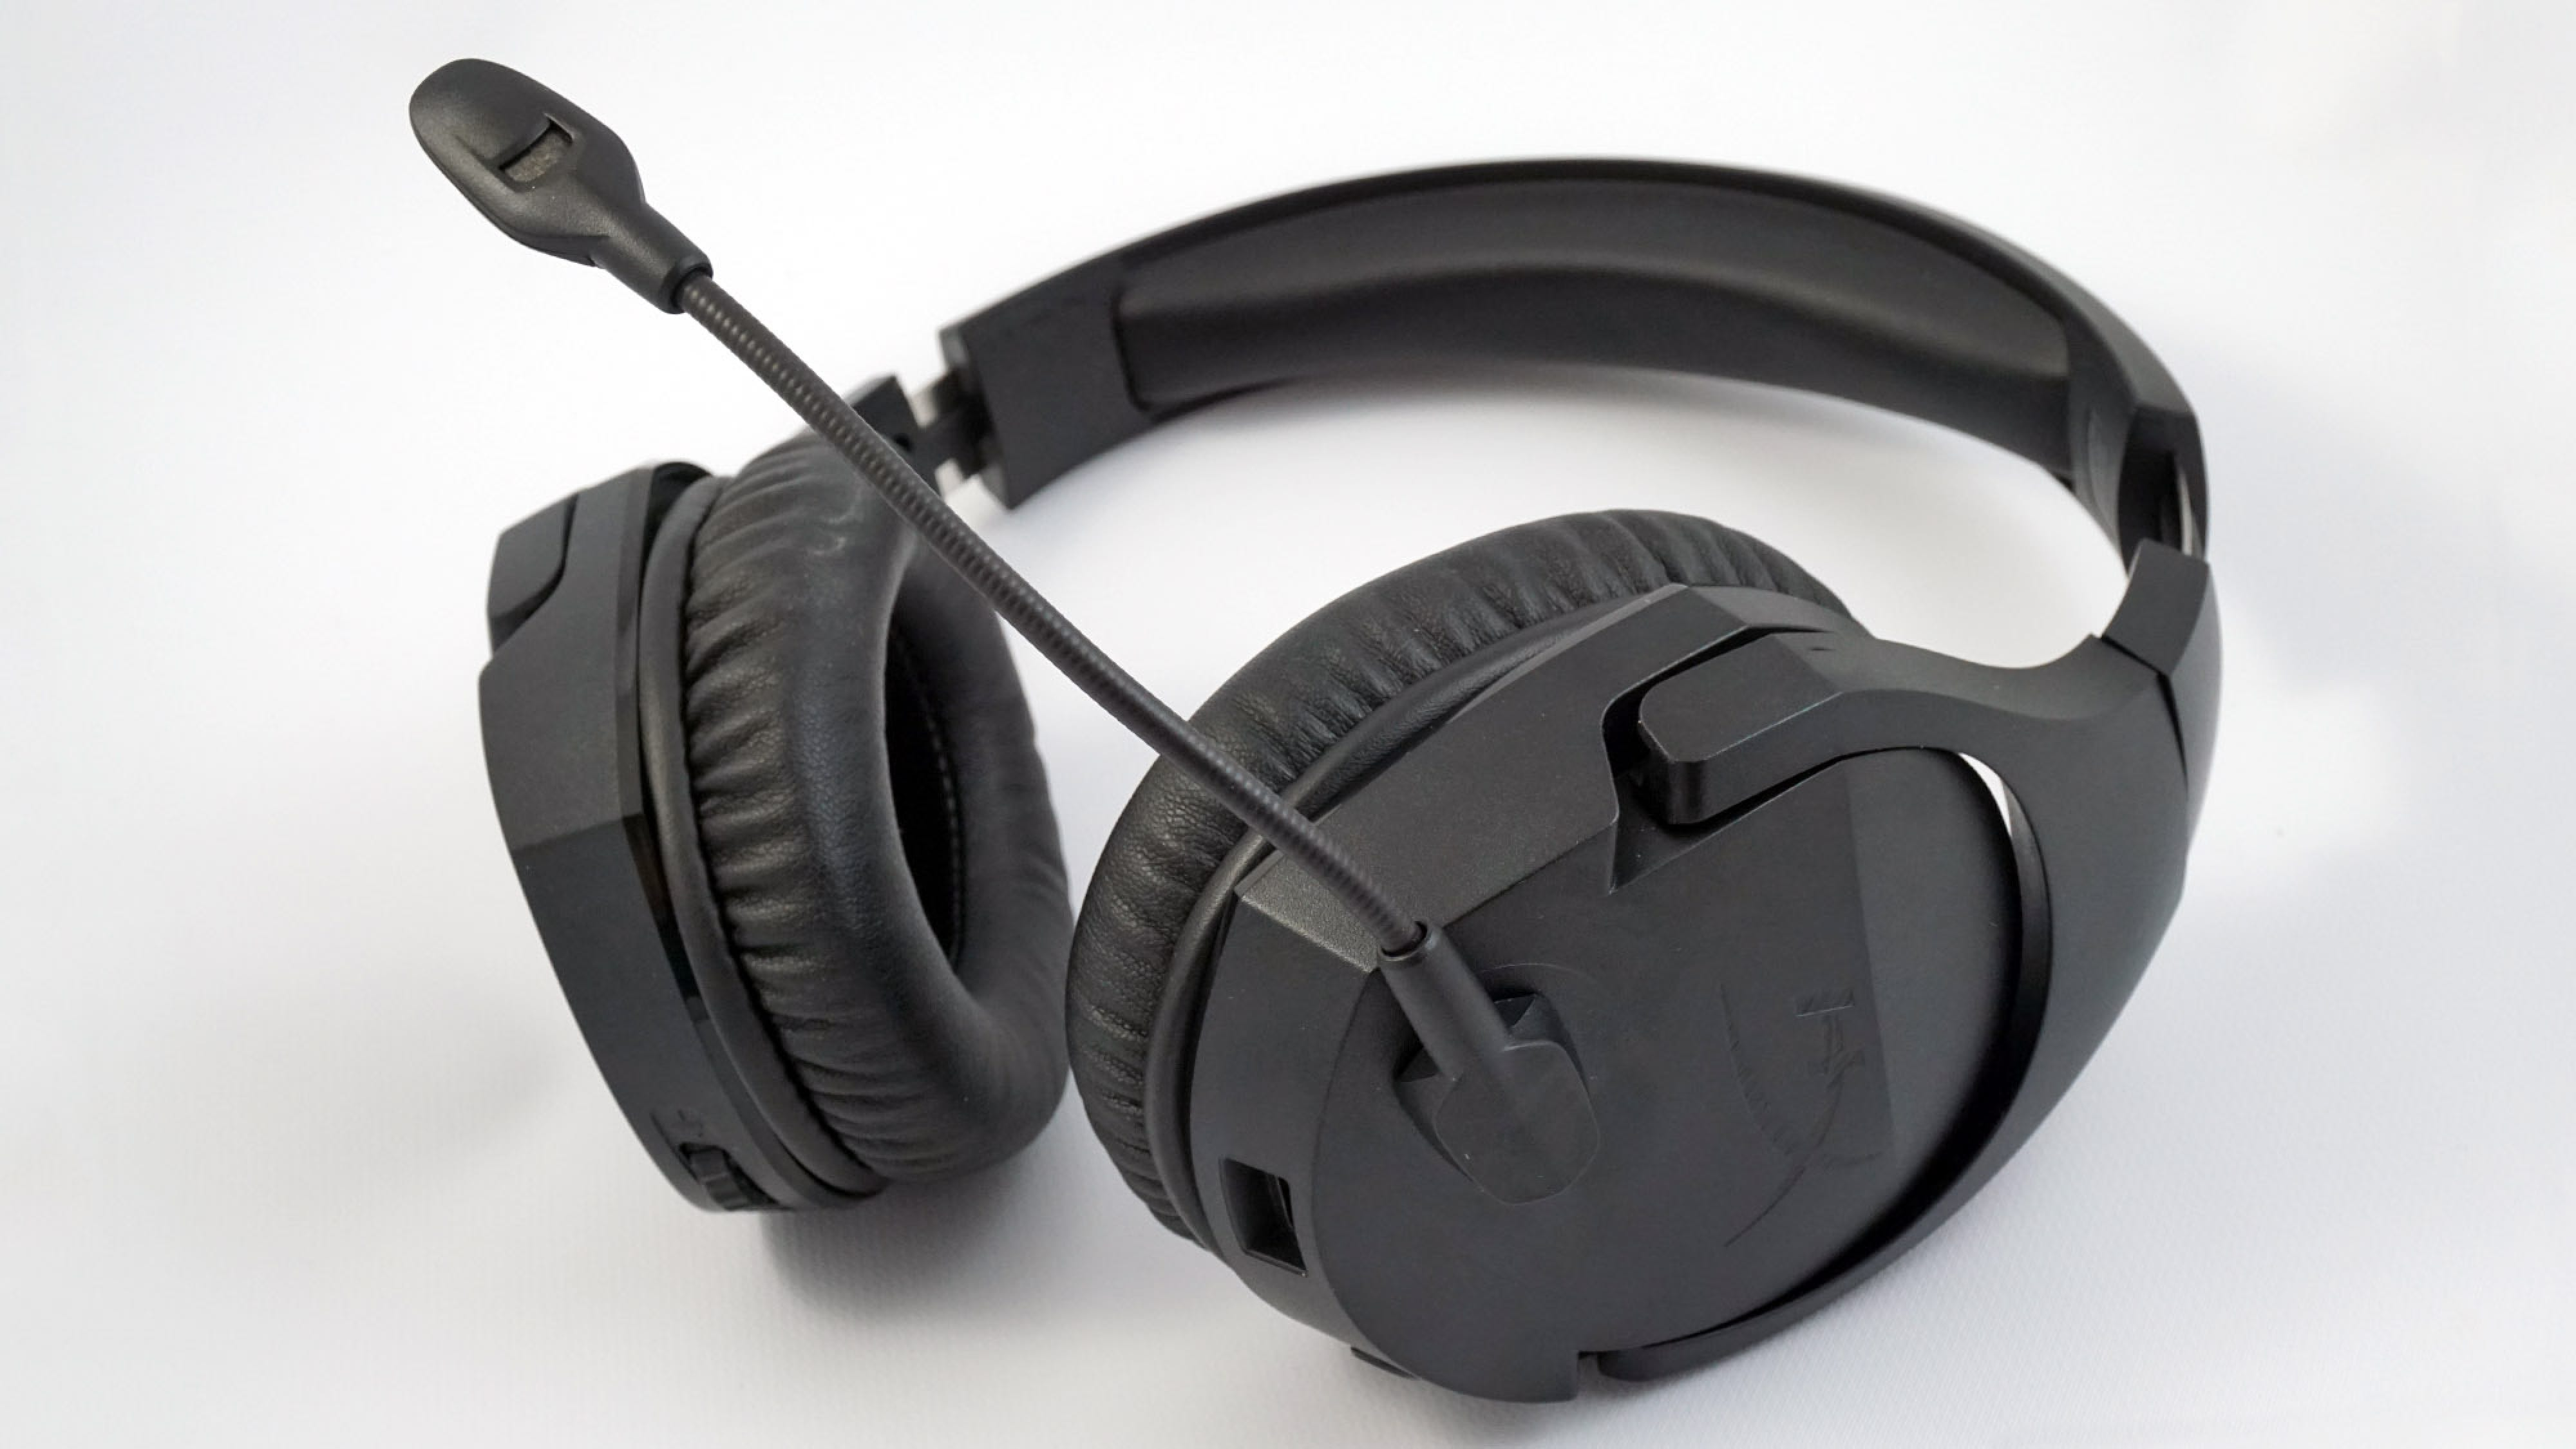 Hyperx Cloud Stinger Review A Comfy Gaming Headset No Bells Nor Whistles Review Geek